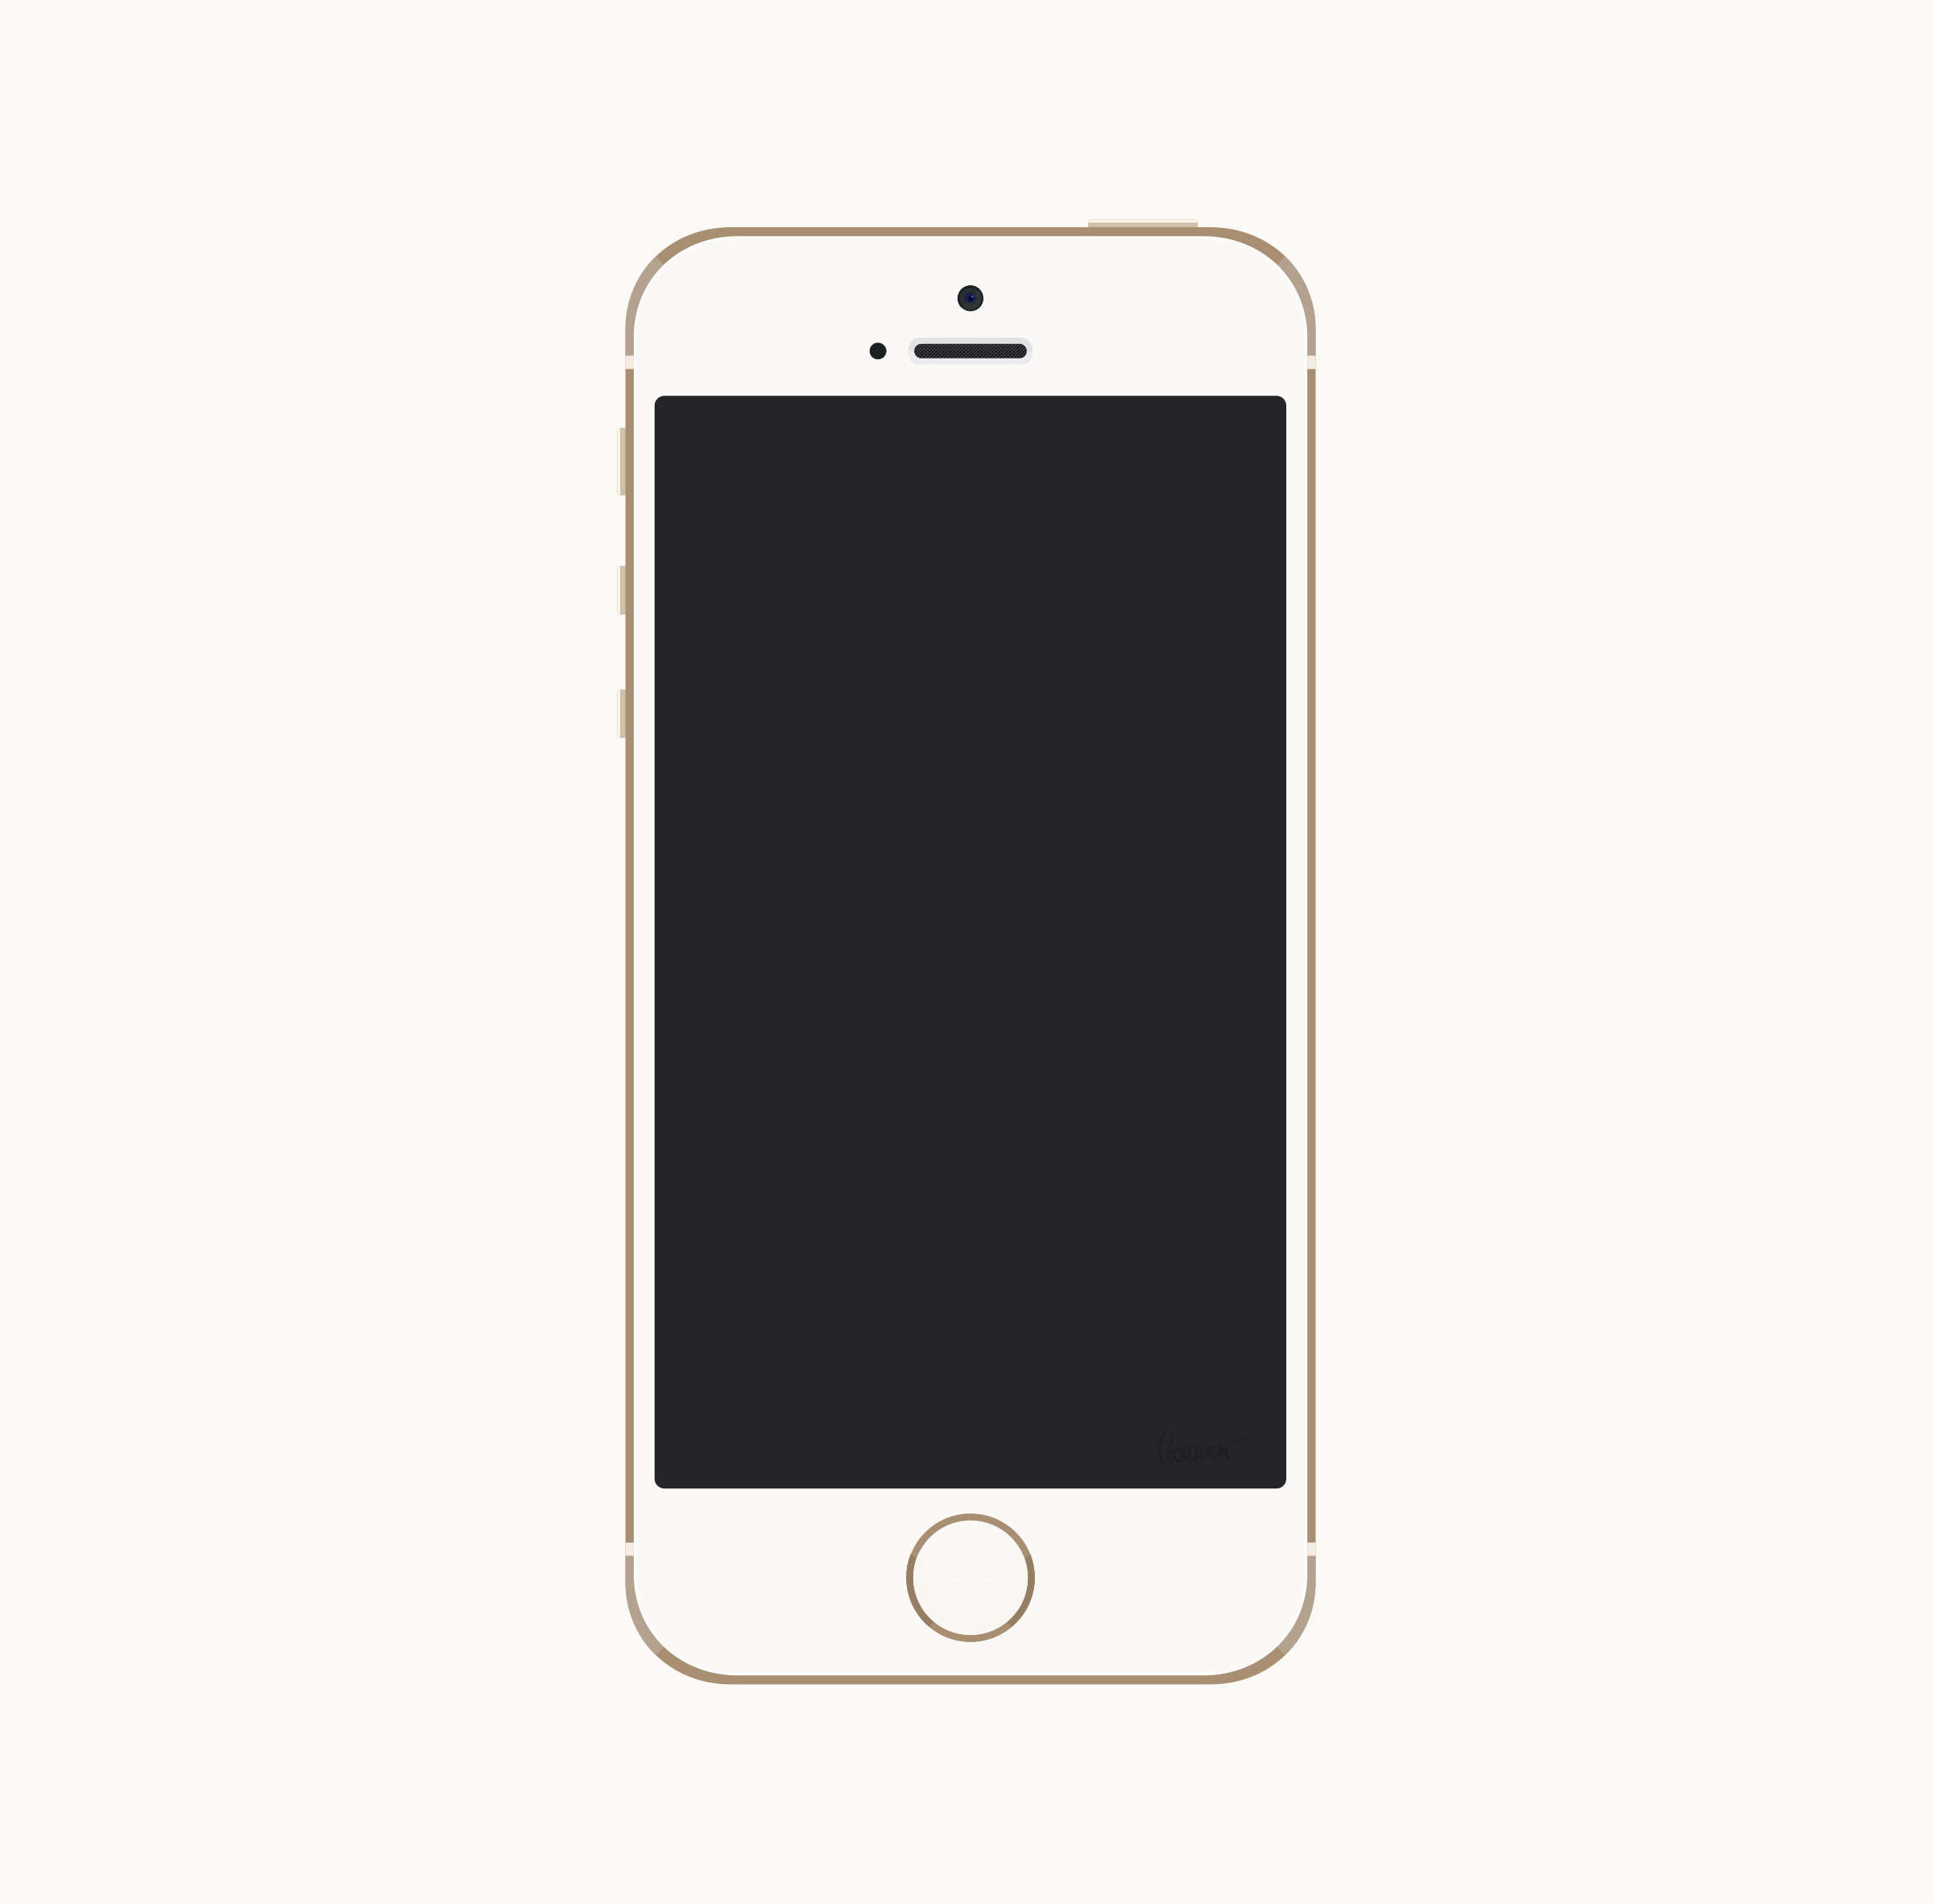 IPhone Cell Phone Clip Art Clipart Free in 2019.